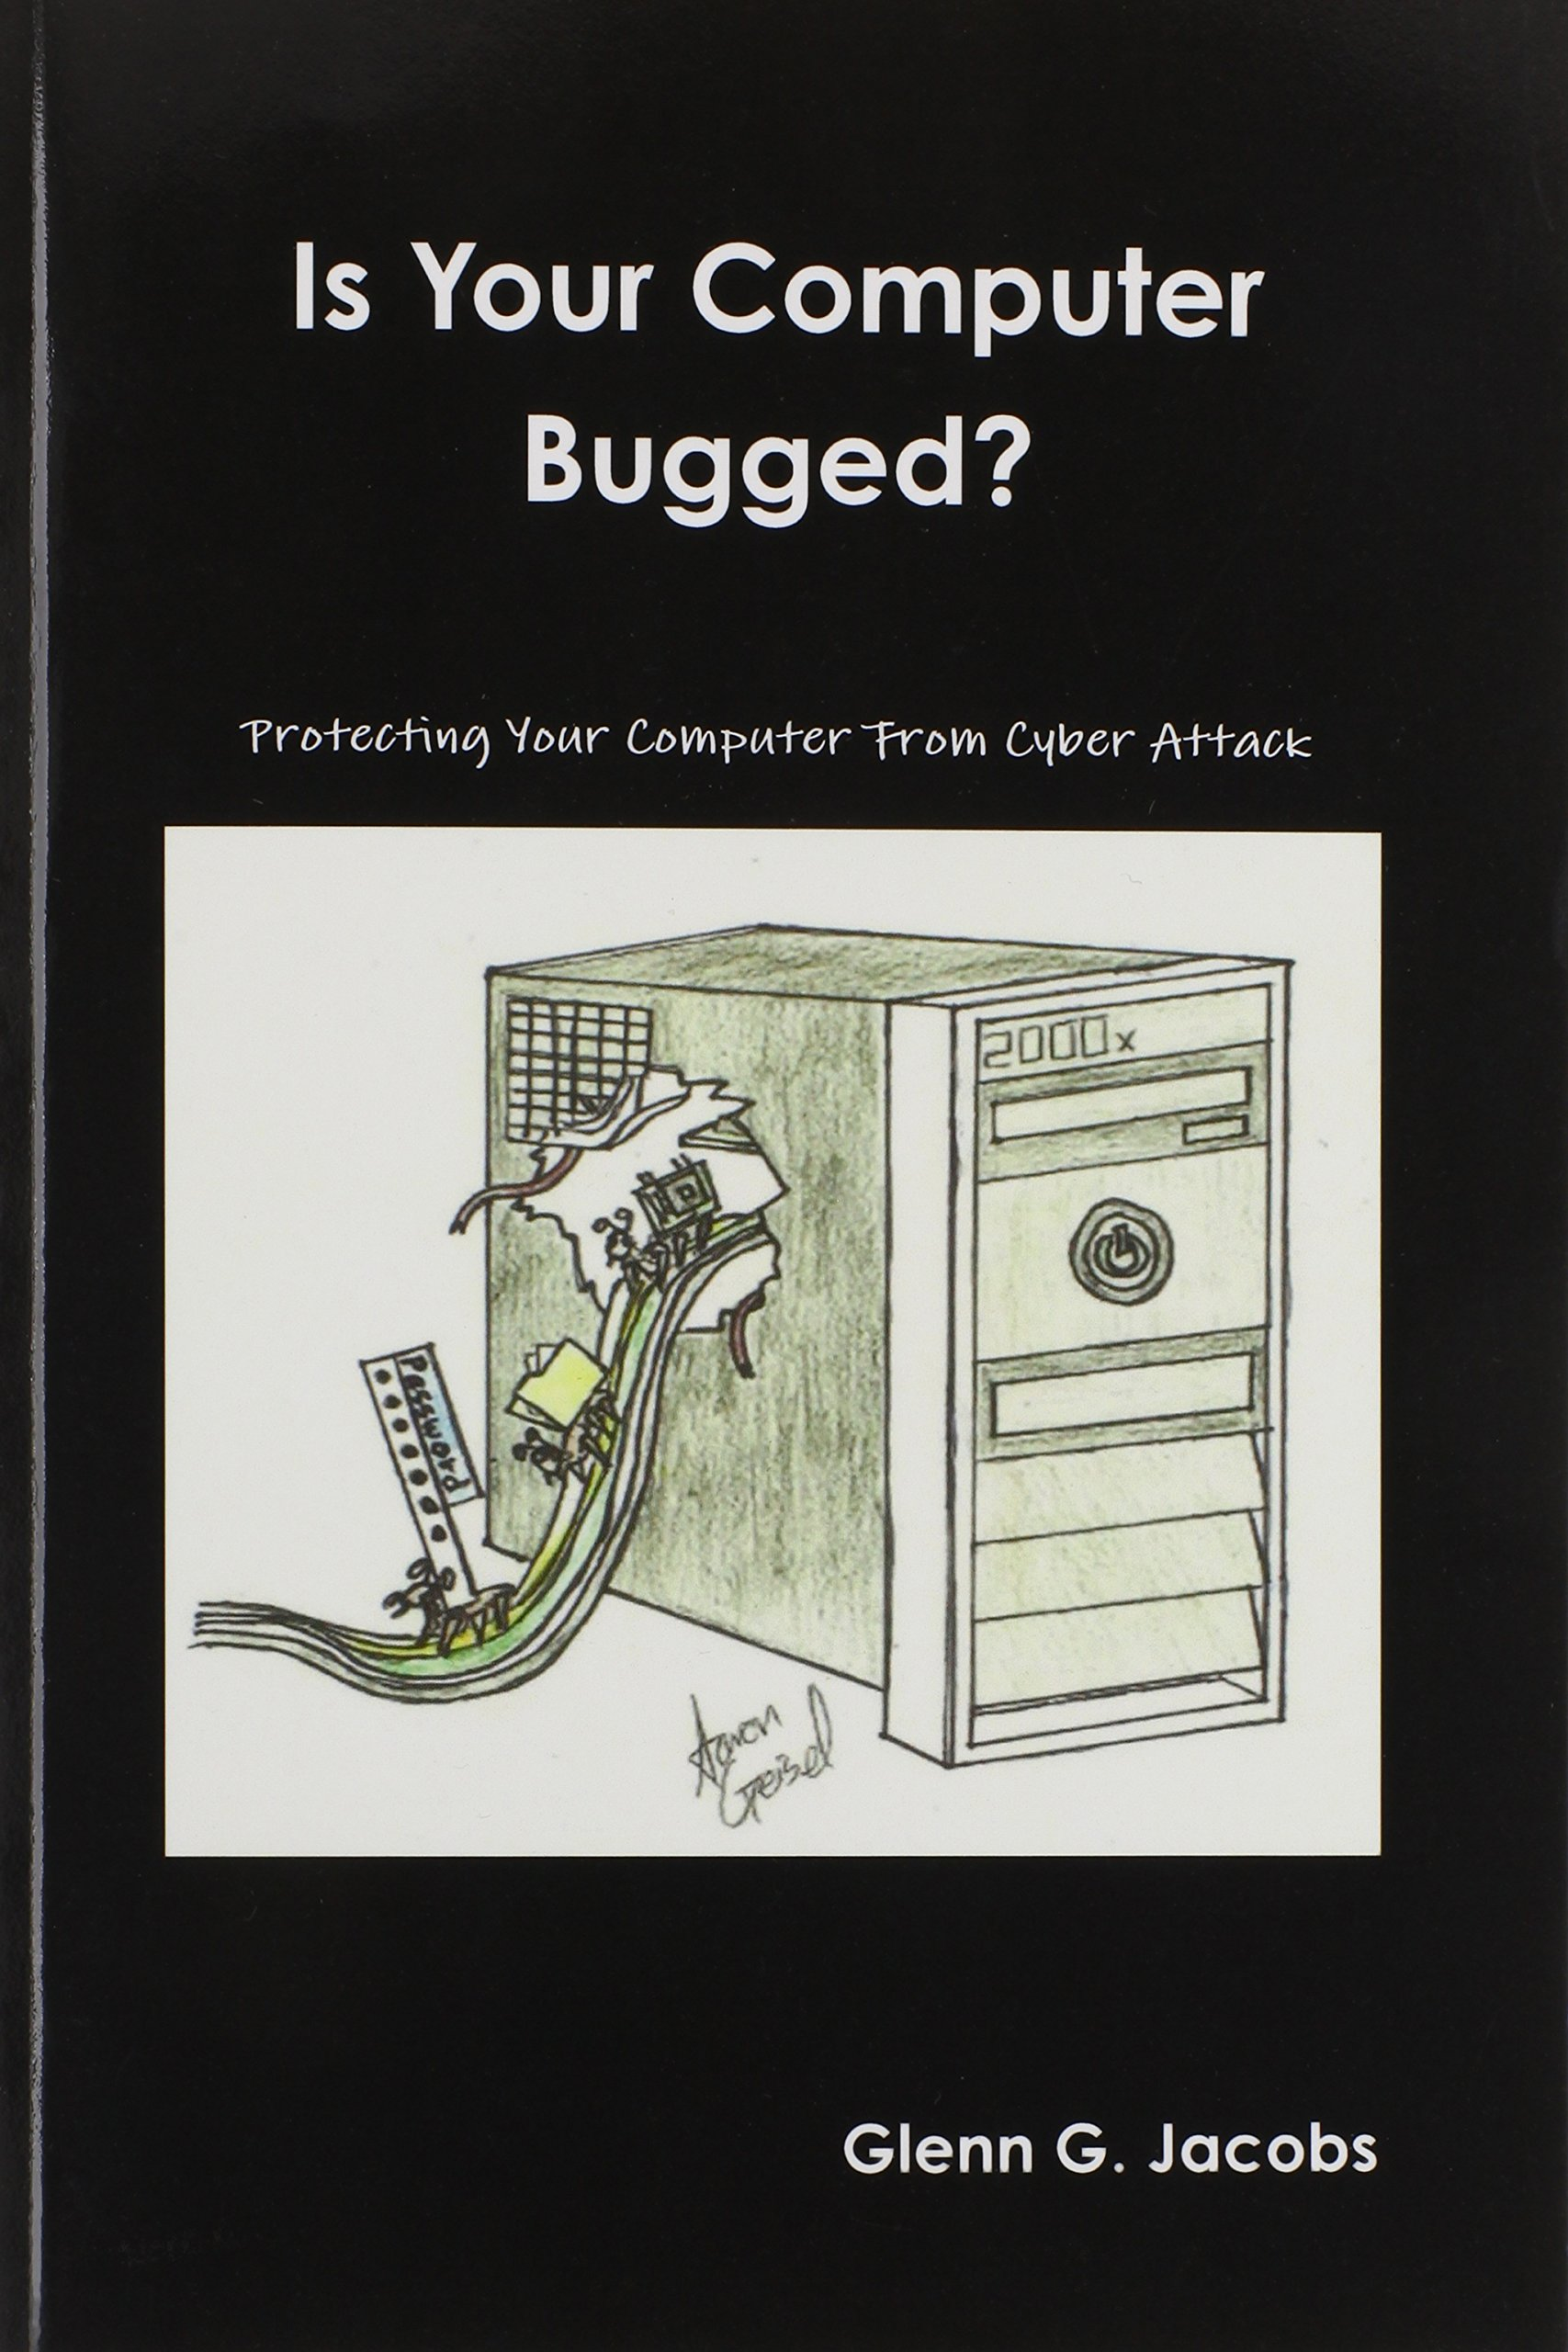 Is Your Computer Bugged Glenn G Jacobs 9781435797529 Ignition System Wiring Diagram Free Download Books